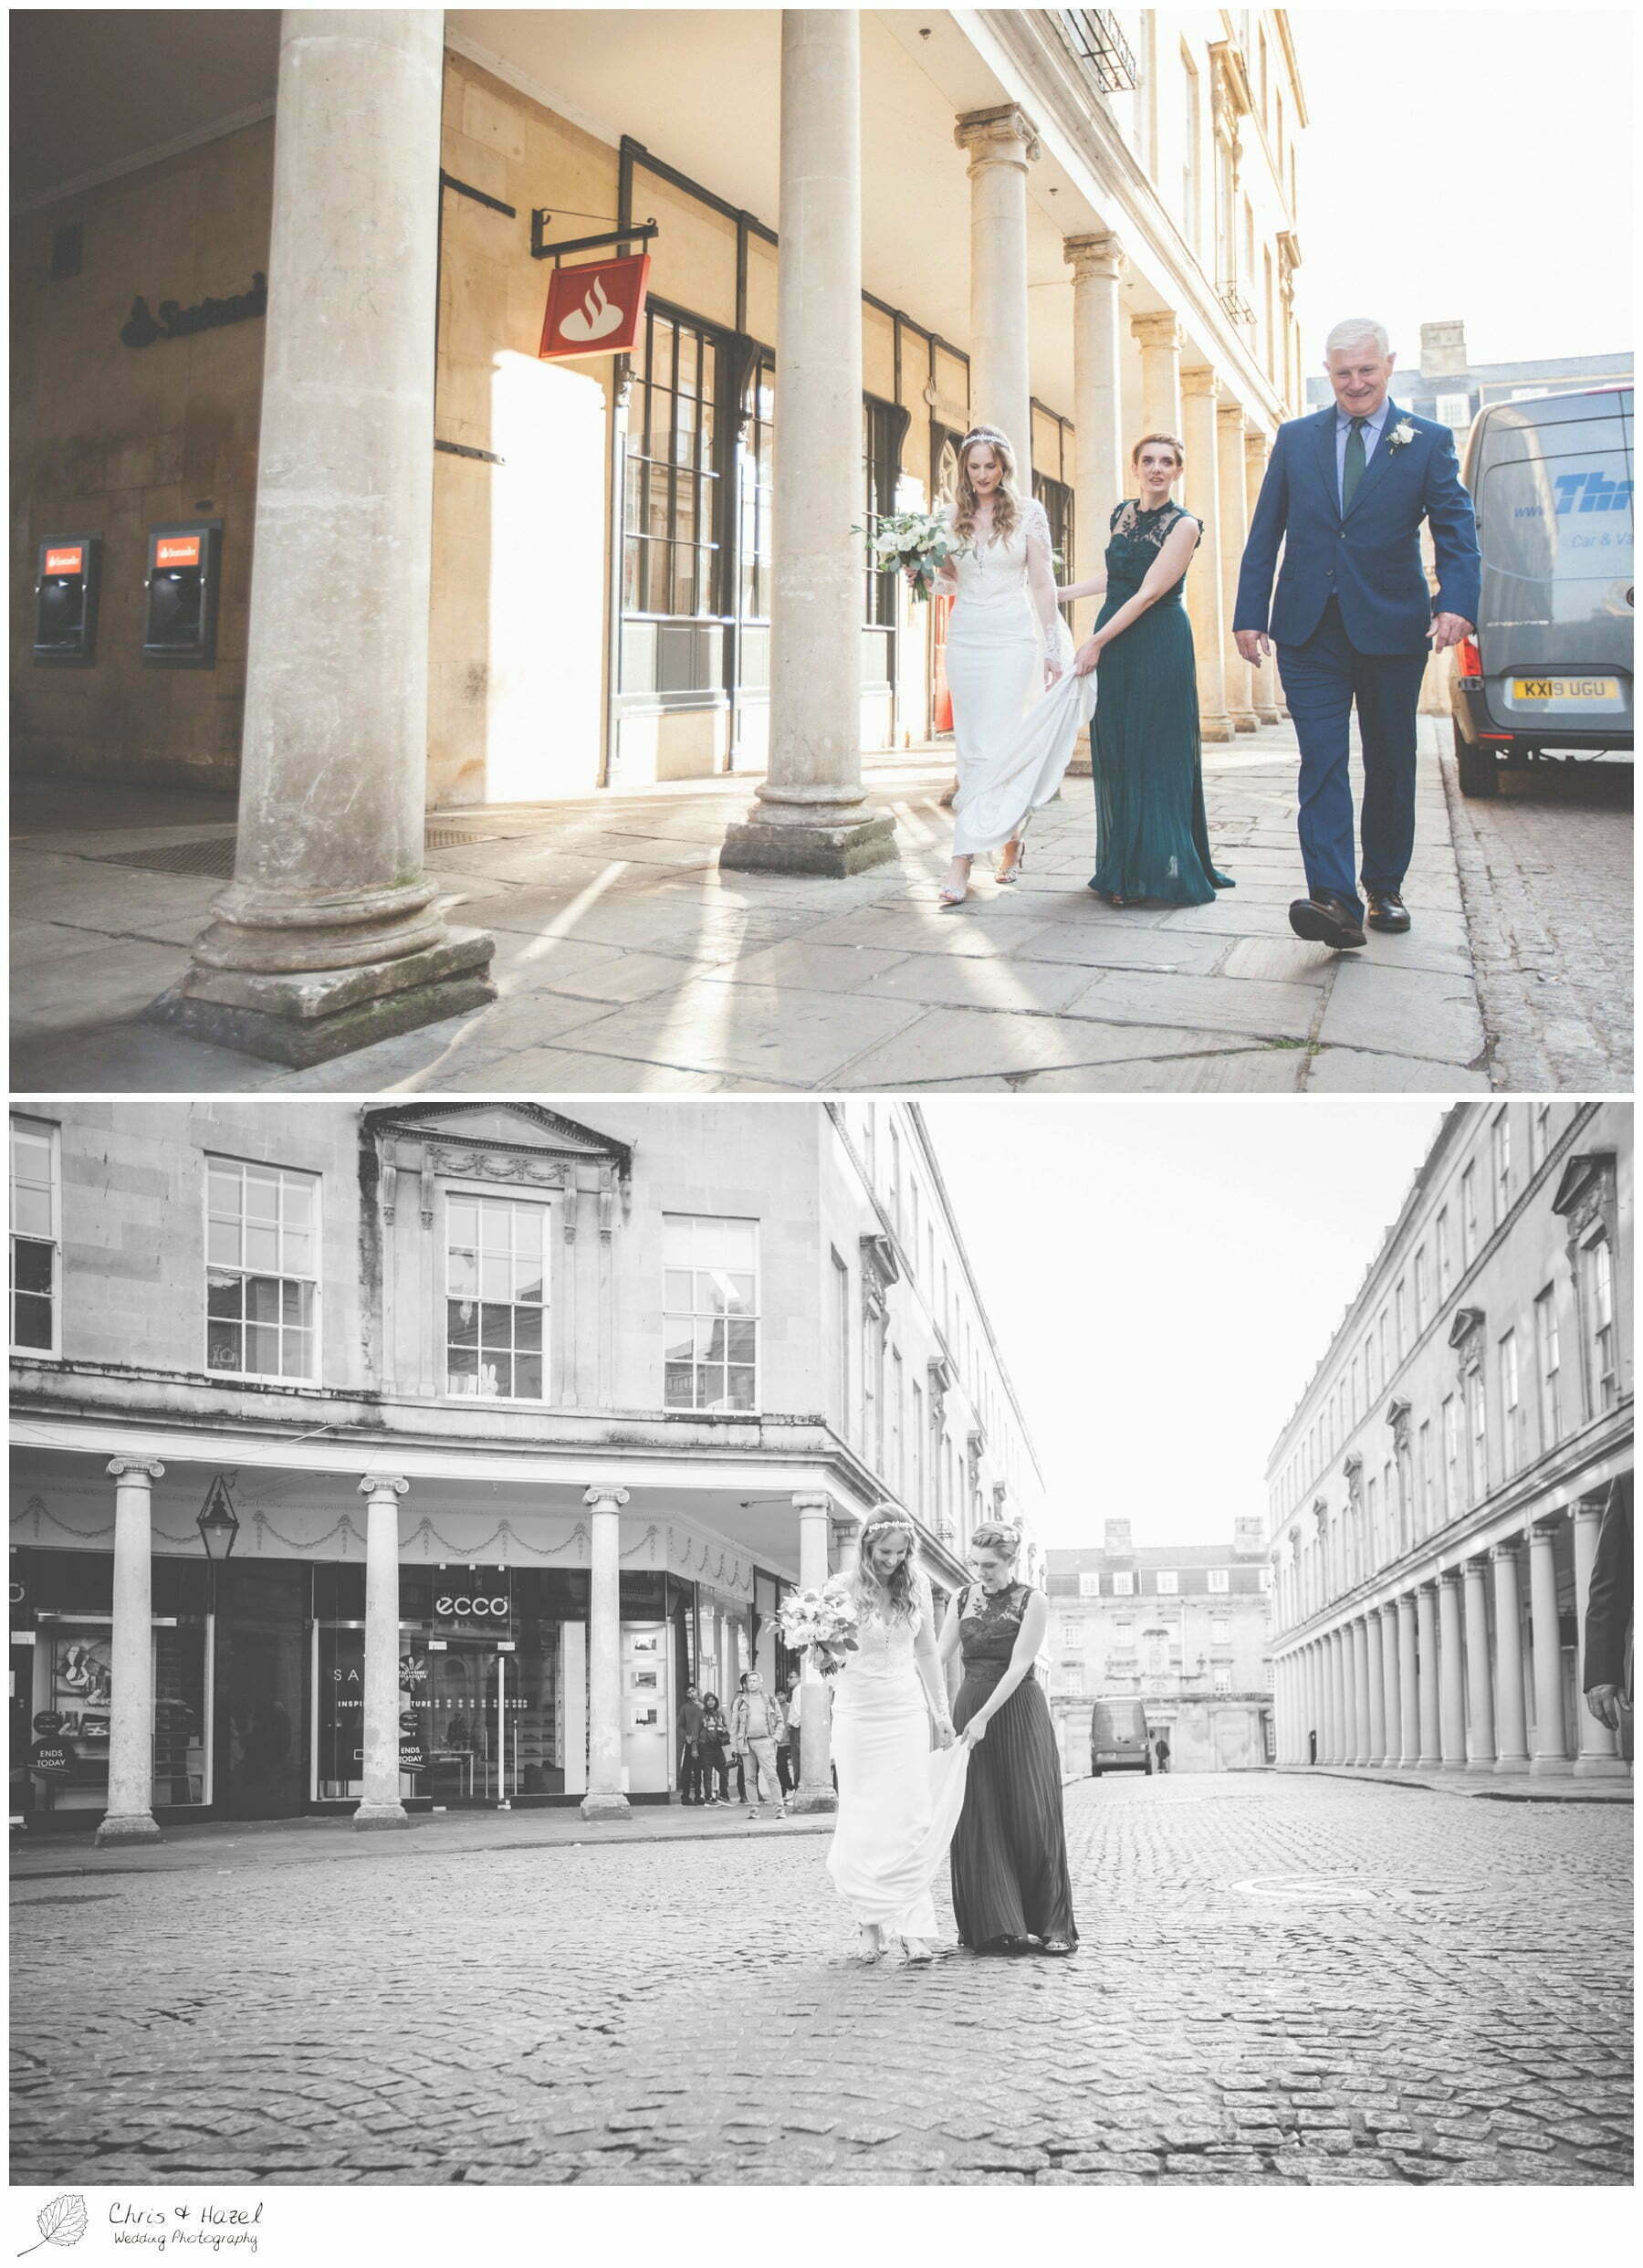 Bride walking down cobbled street with father bath, The Roman Baths Wedding Photography, Roman Baths Wedding Photographer, Wedding in Bath, Bath Wedding Day, documentary wedding photography, Chris and Hazel Wedding Photography Bath, Andy Frost Sian Upson